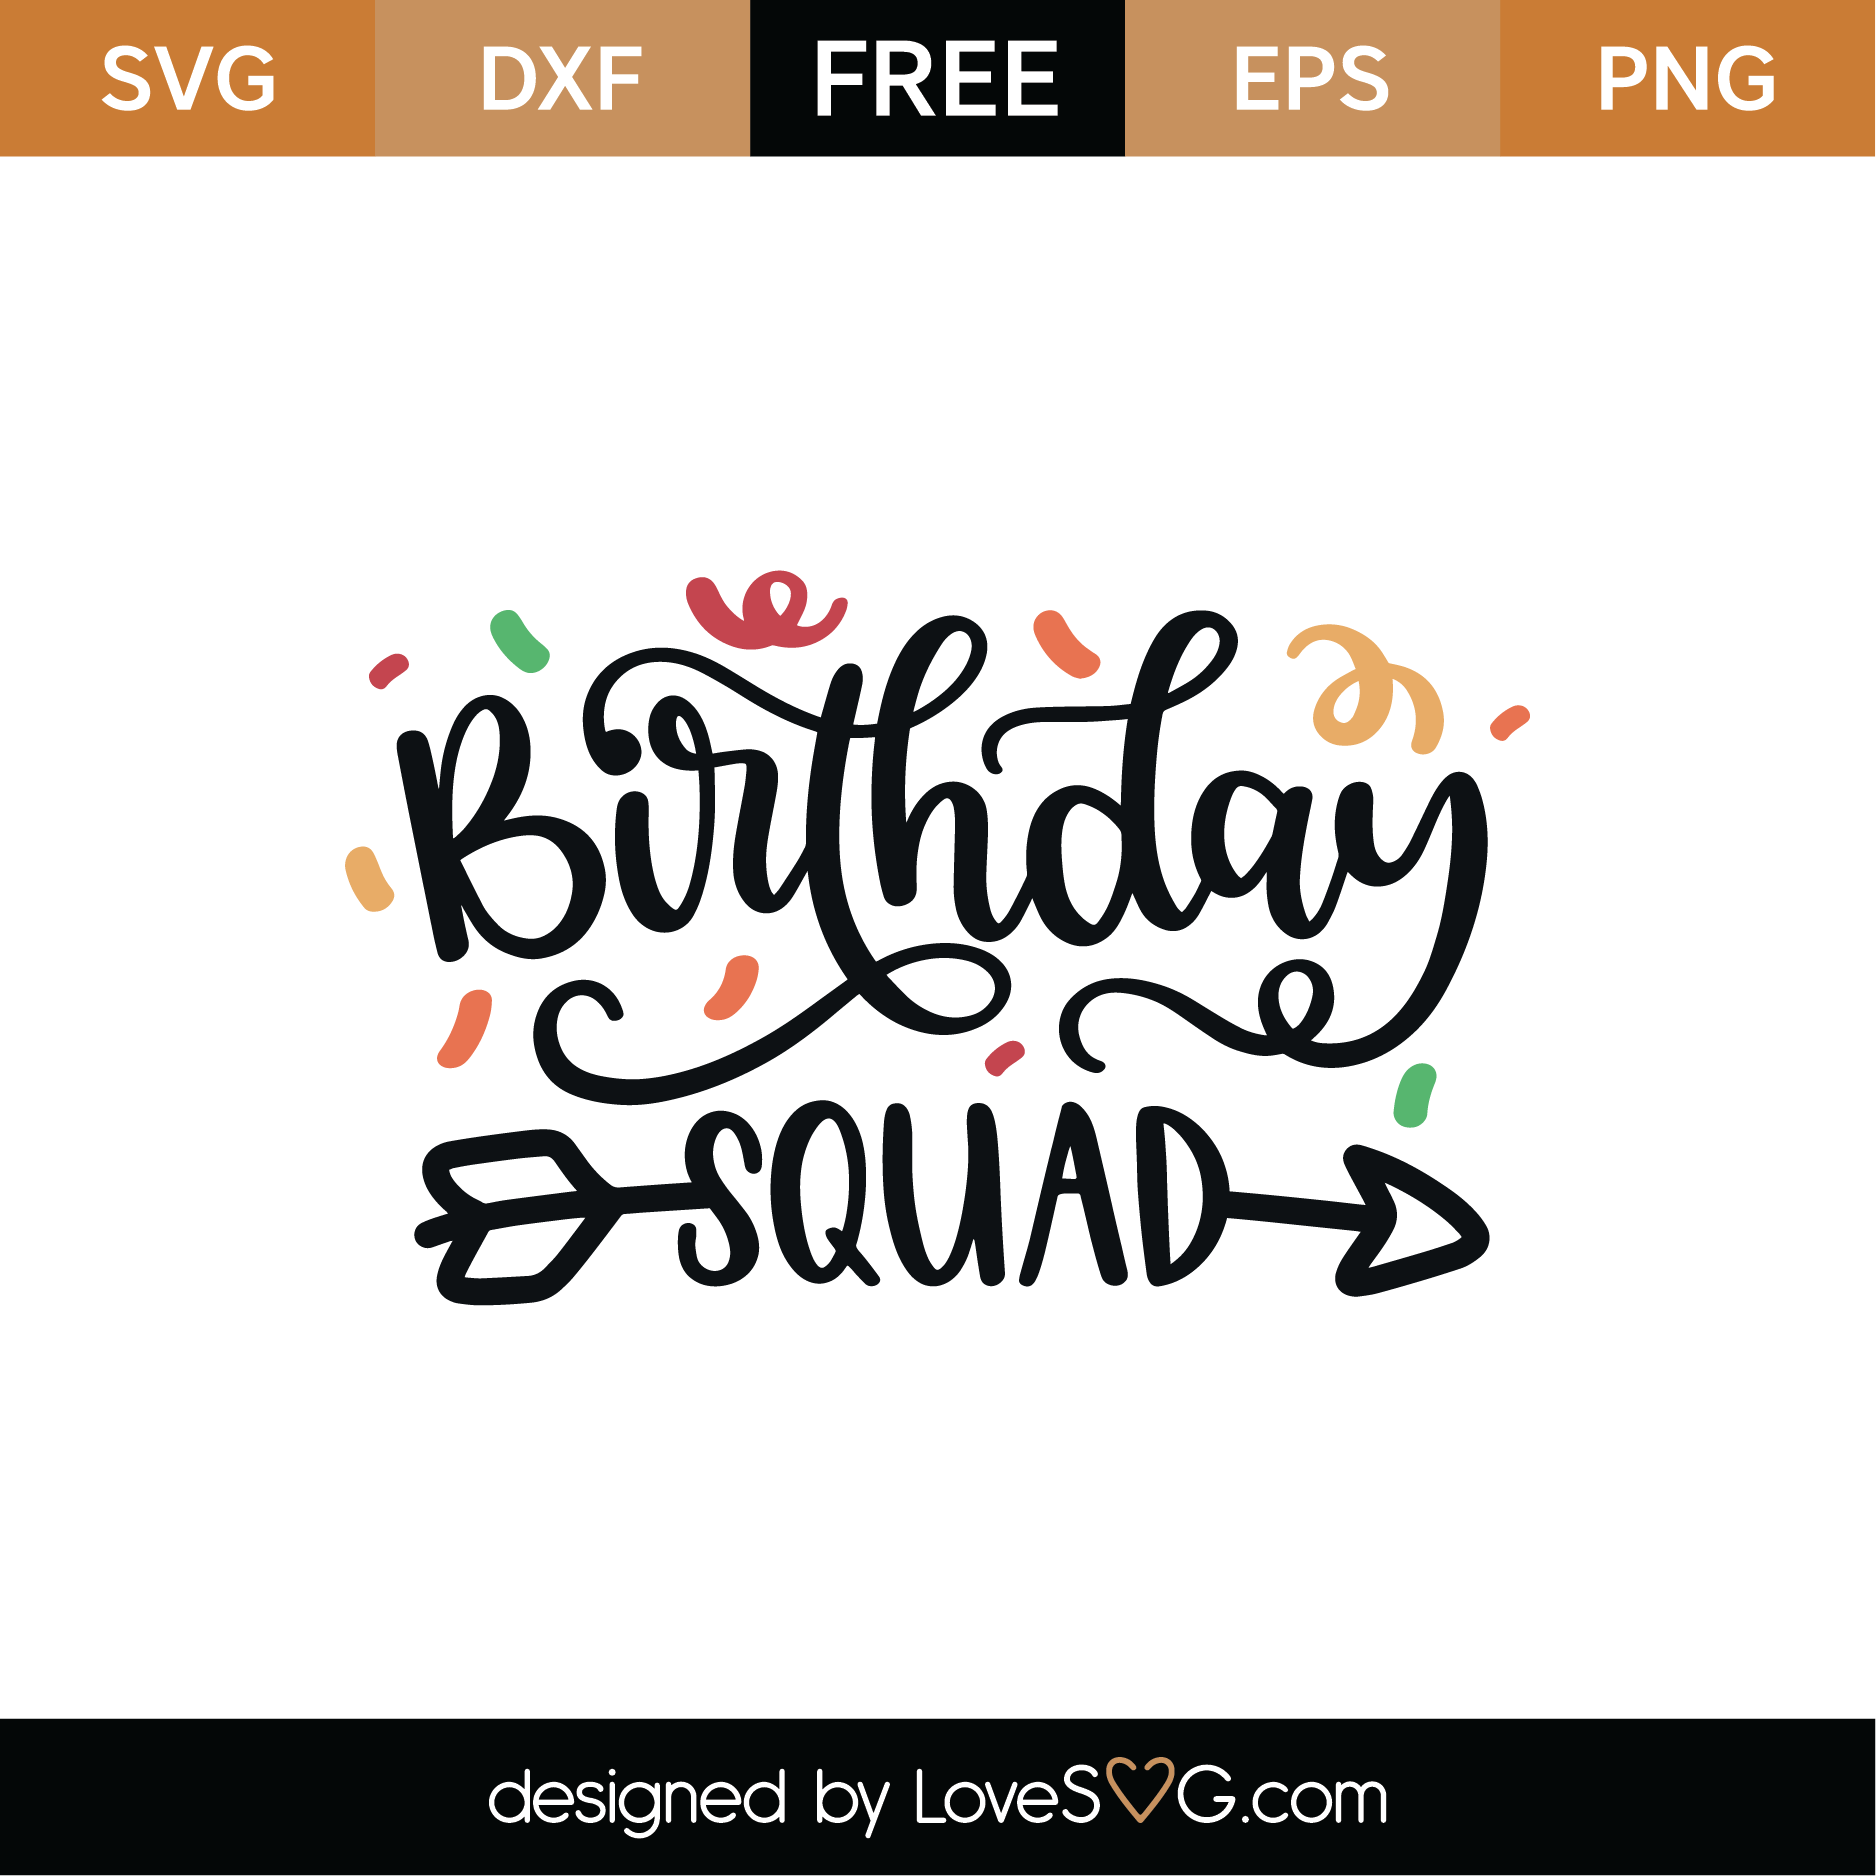 Download Free Birthday Squad SVG Cut File | Lovesvg.com